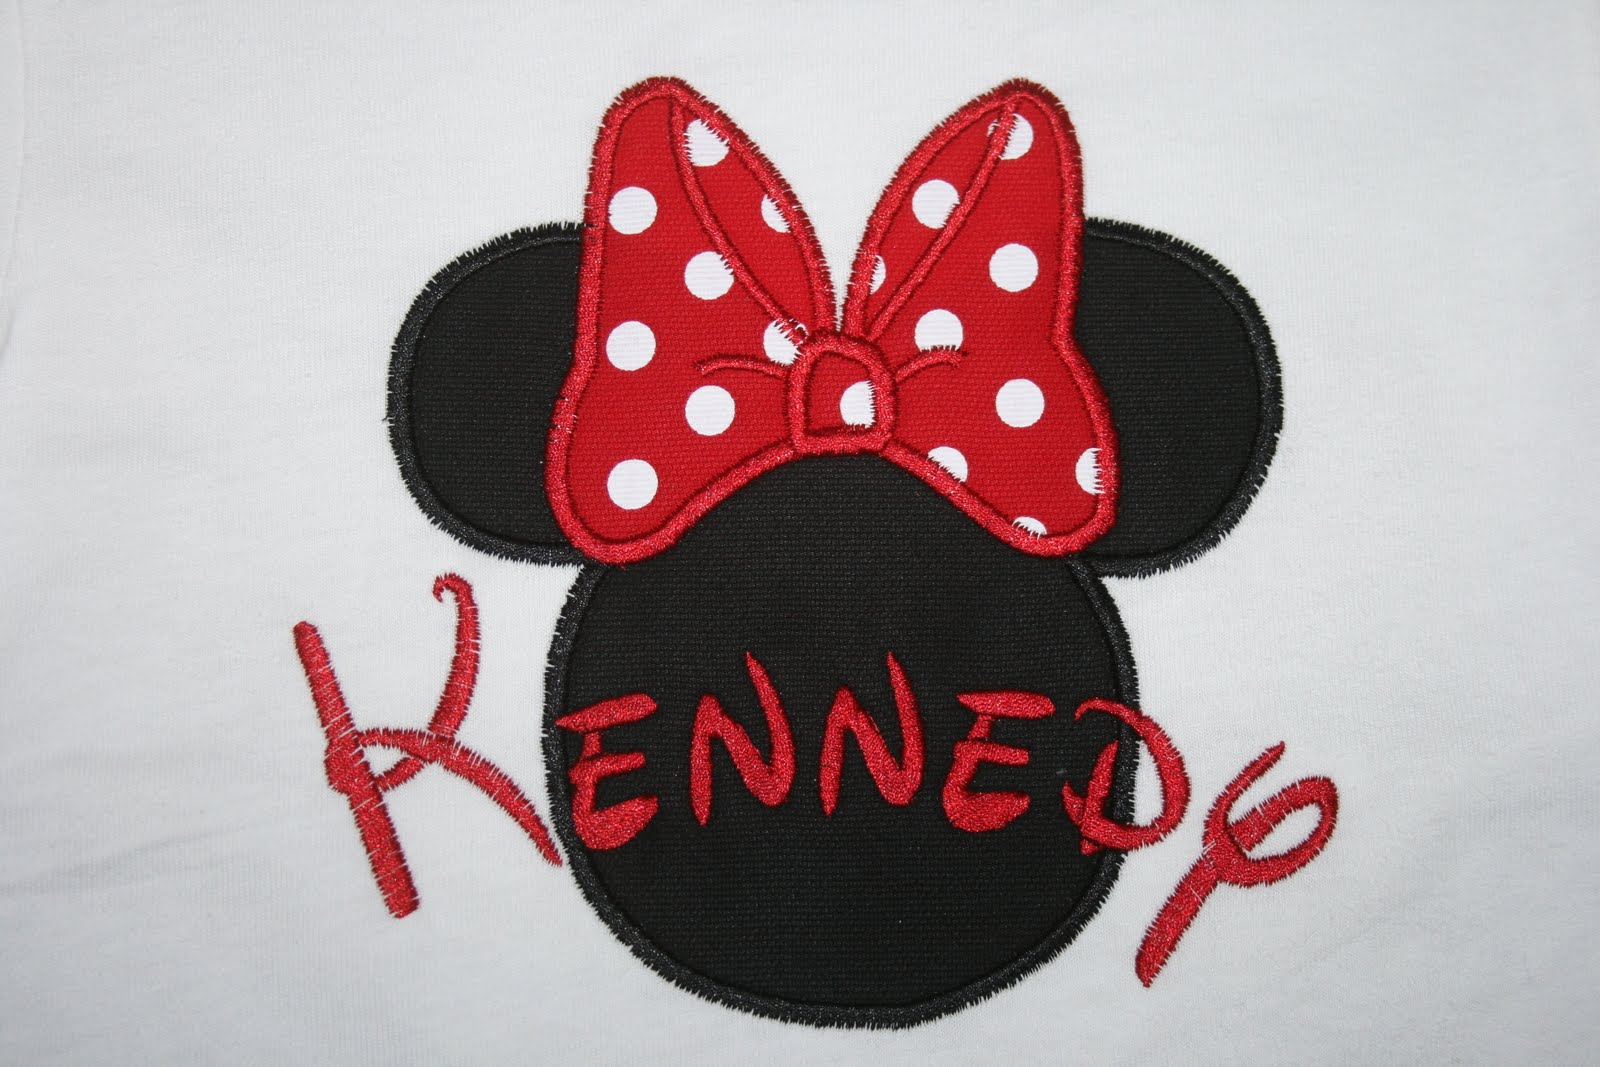 SewForum.com • View topic - Mickey Mouse applique